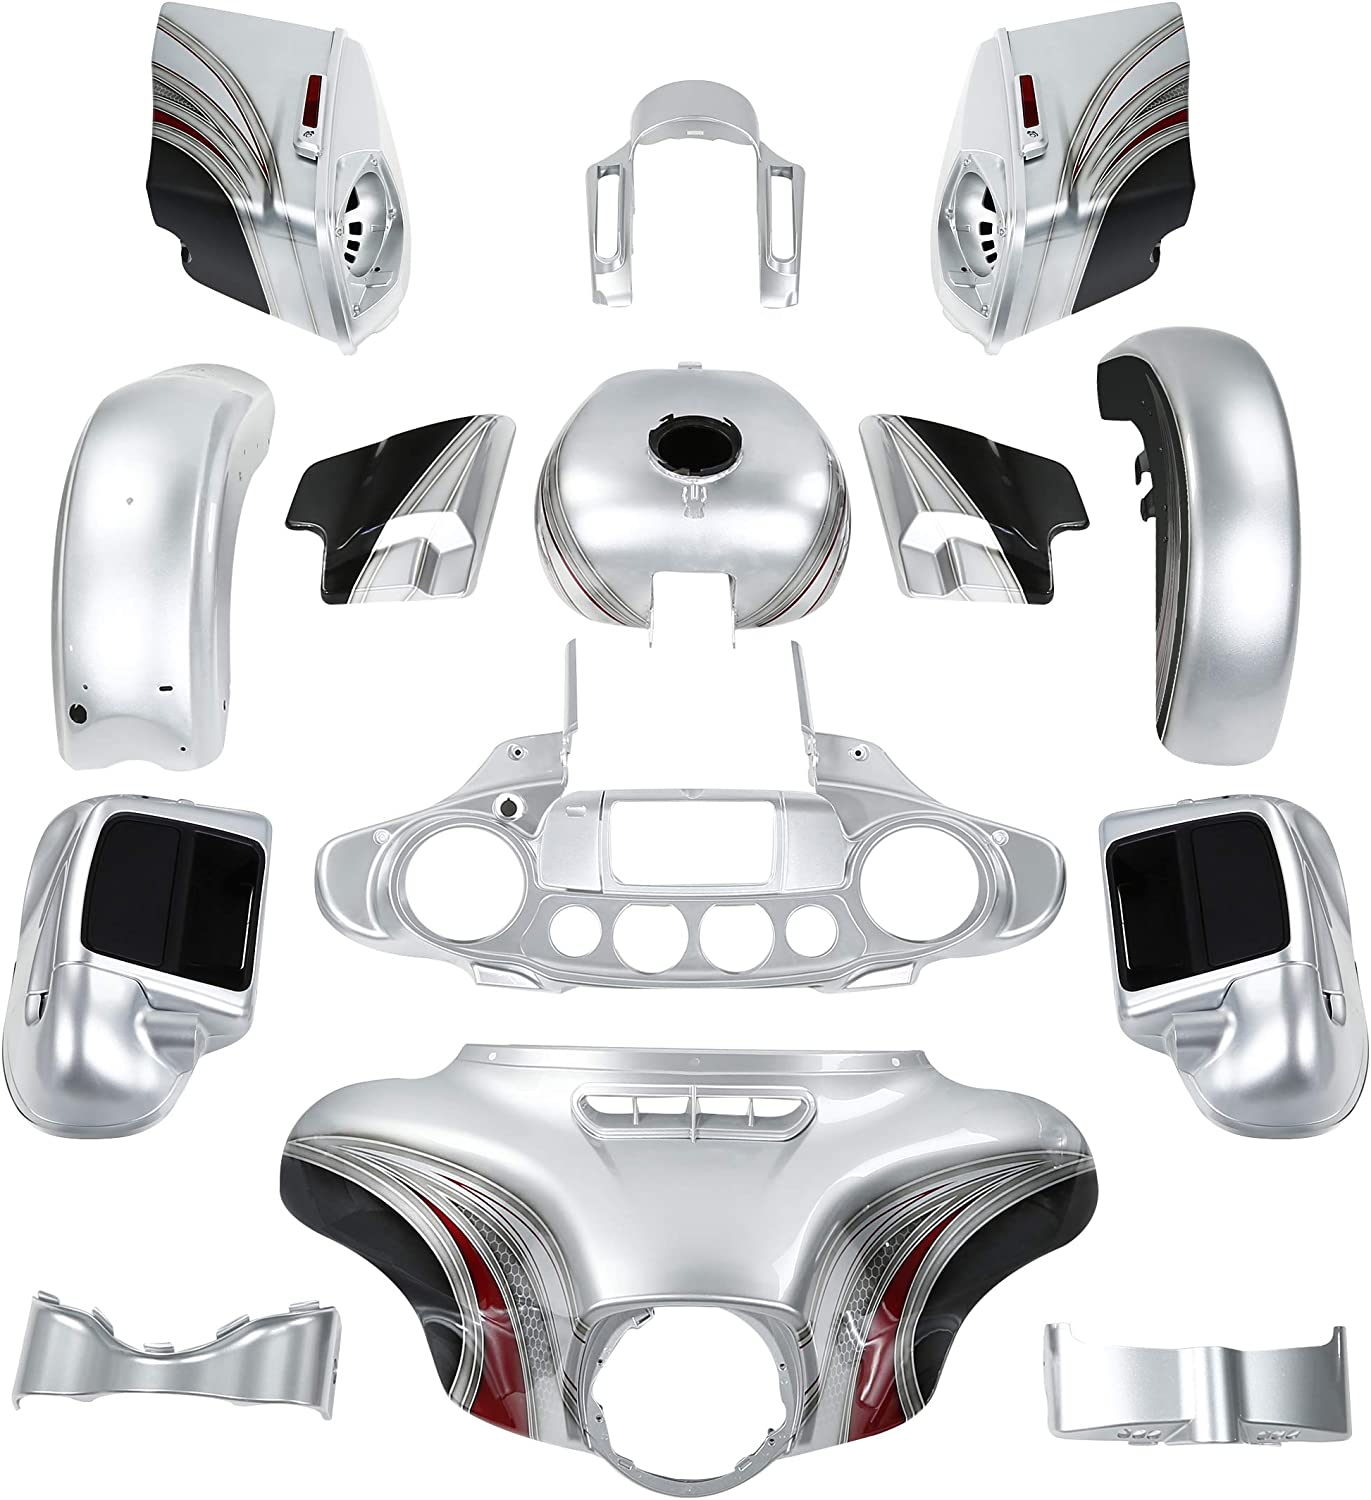 Shipping included Motorcycle Complete Body Work Fairings discount Saddlebags Batwing Custom